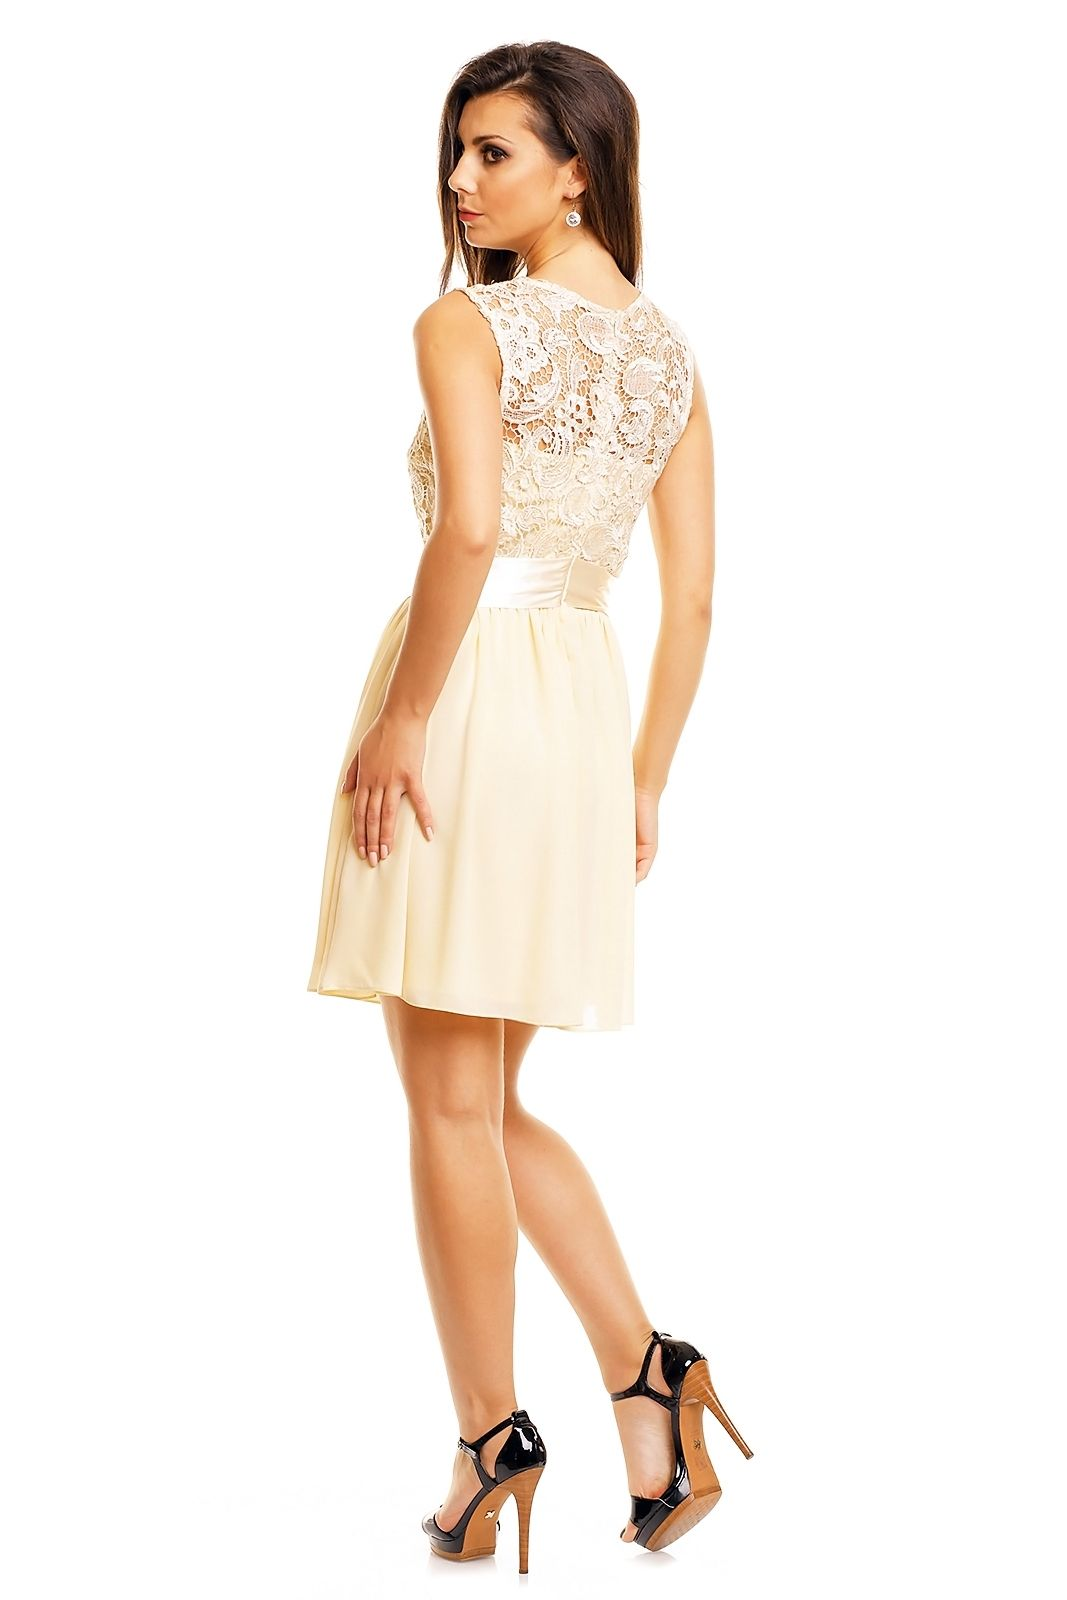 Robe de cocktail Couleur: cream white | Robe cocktail, Robe